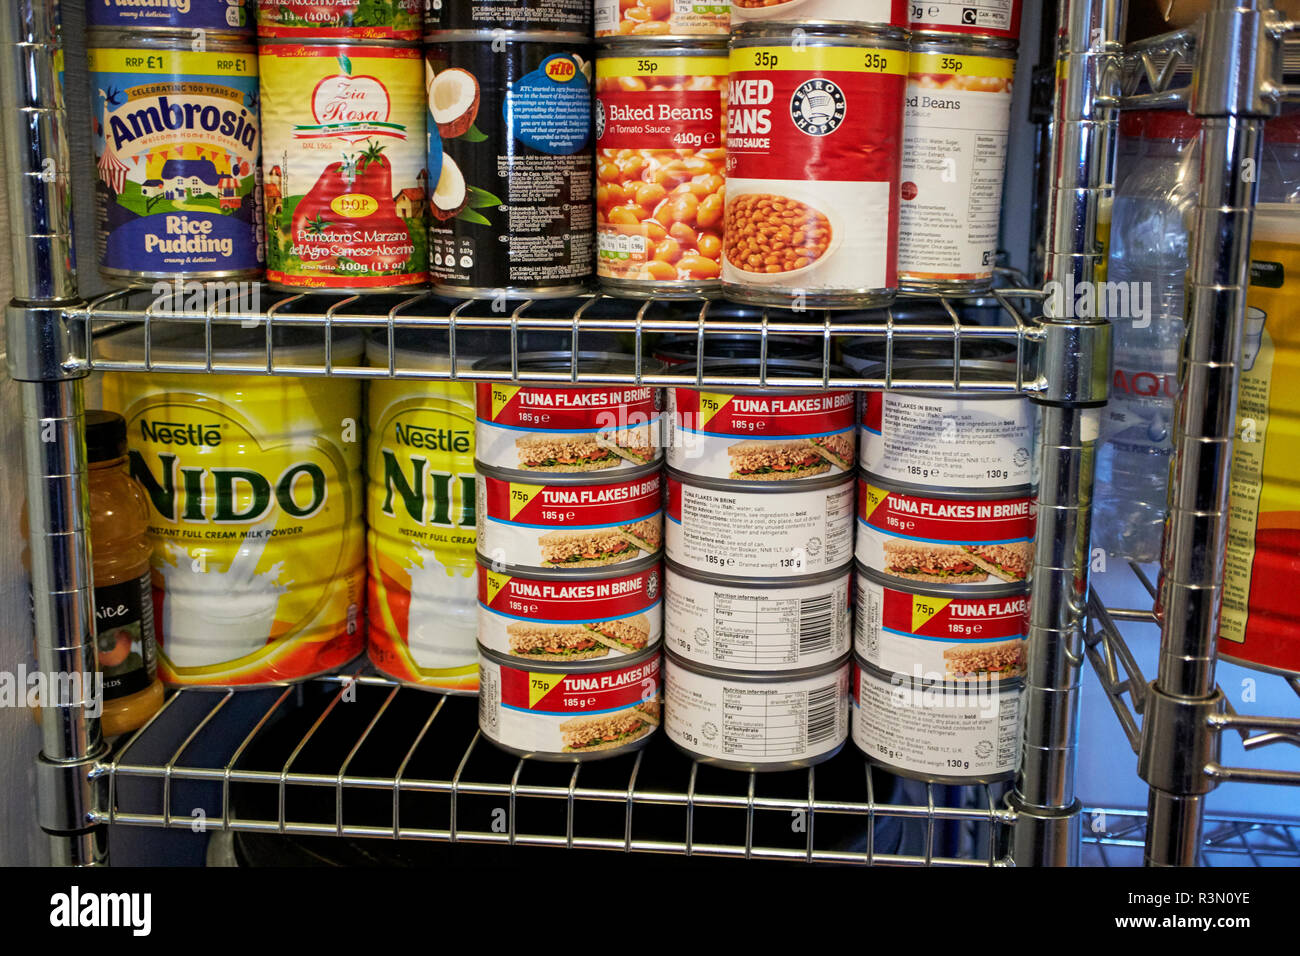 canned goods powdered milk stored in case of brexit emergency - Stock Image